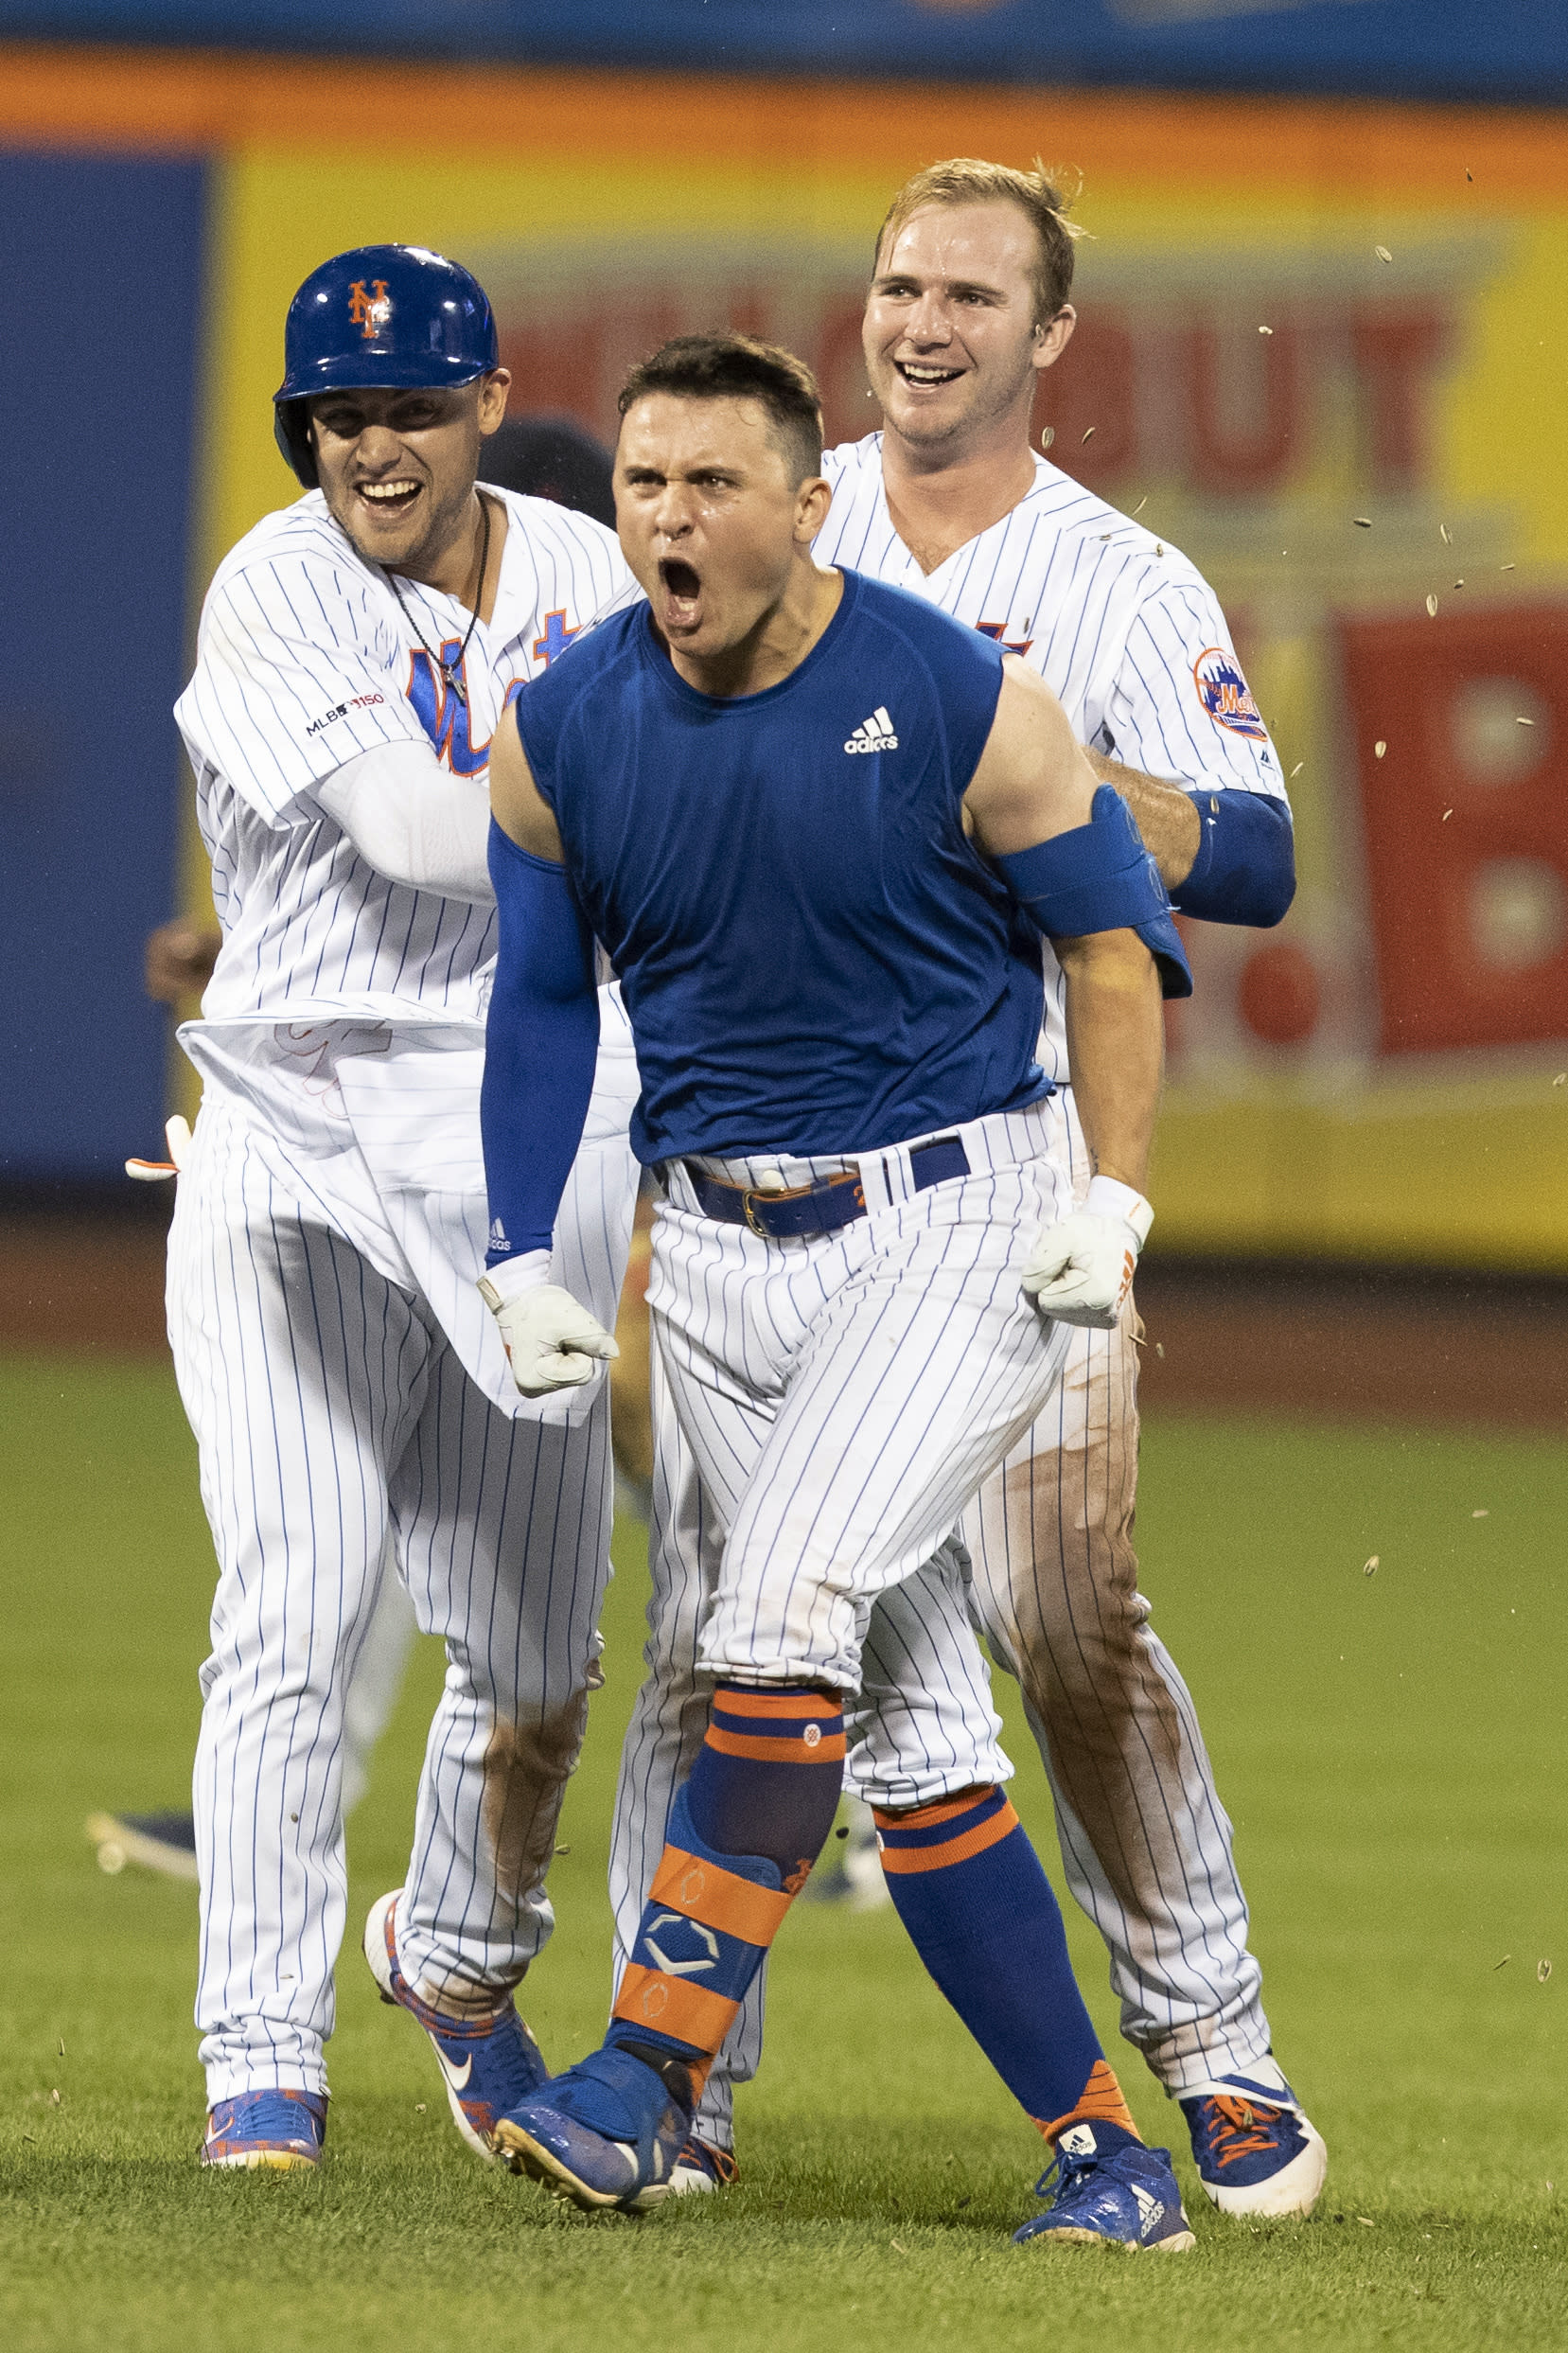 New York Mets' J.D. Davis reacts, center, is congratulated by teammates after he drove in the winning run in the 10th inning of the team's baseball game against the Cleveland Indians, Wednesday, Aug. 21, 2019, in New York. (AP Photo/Mary Altaffer)